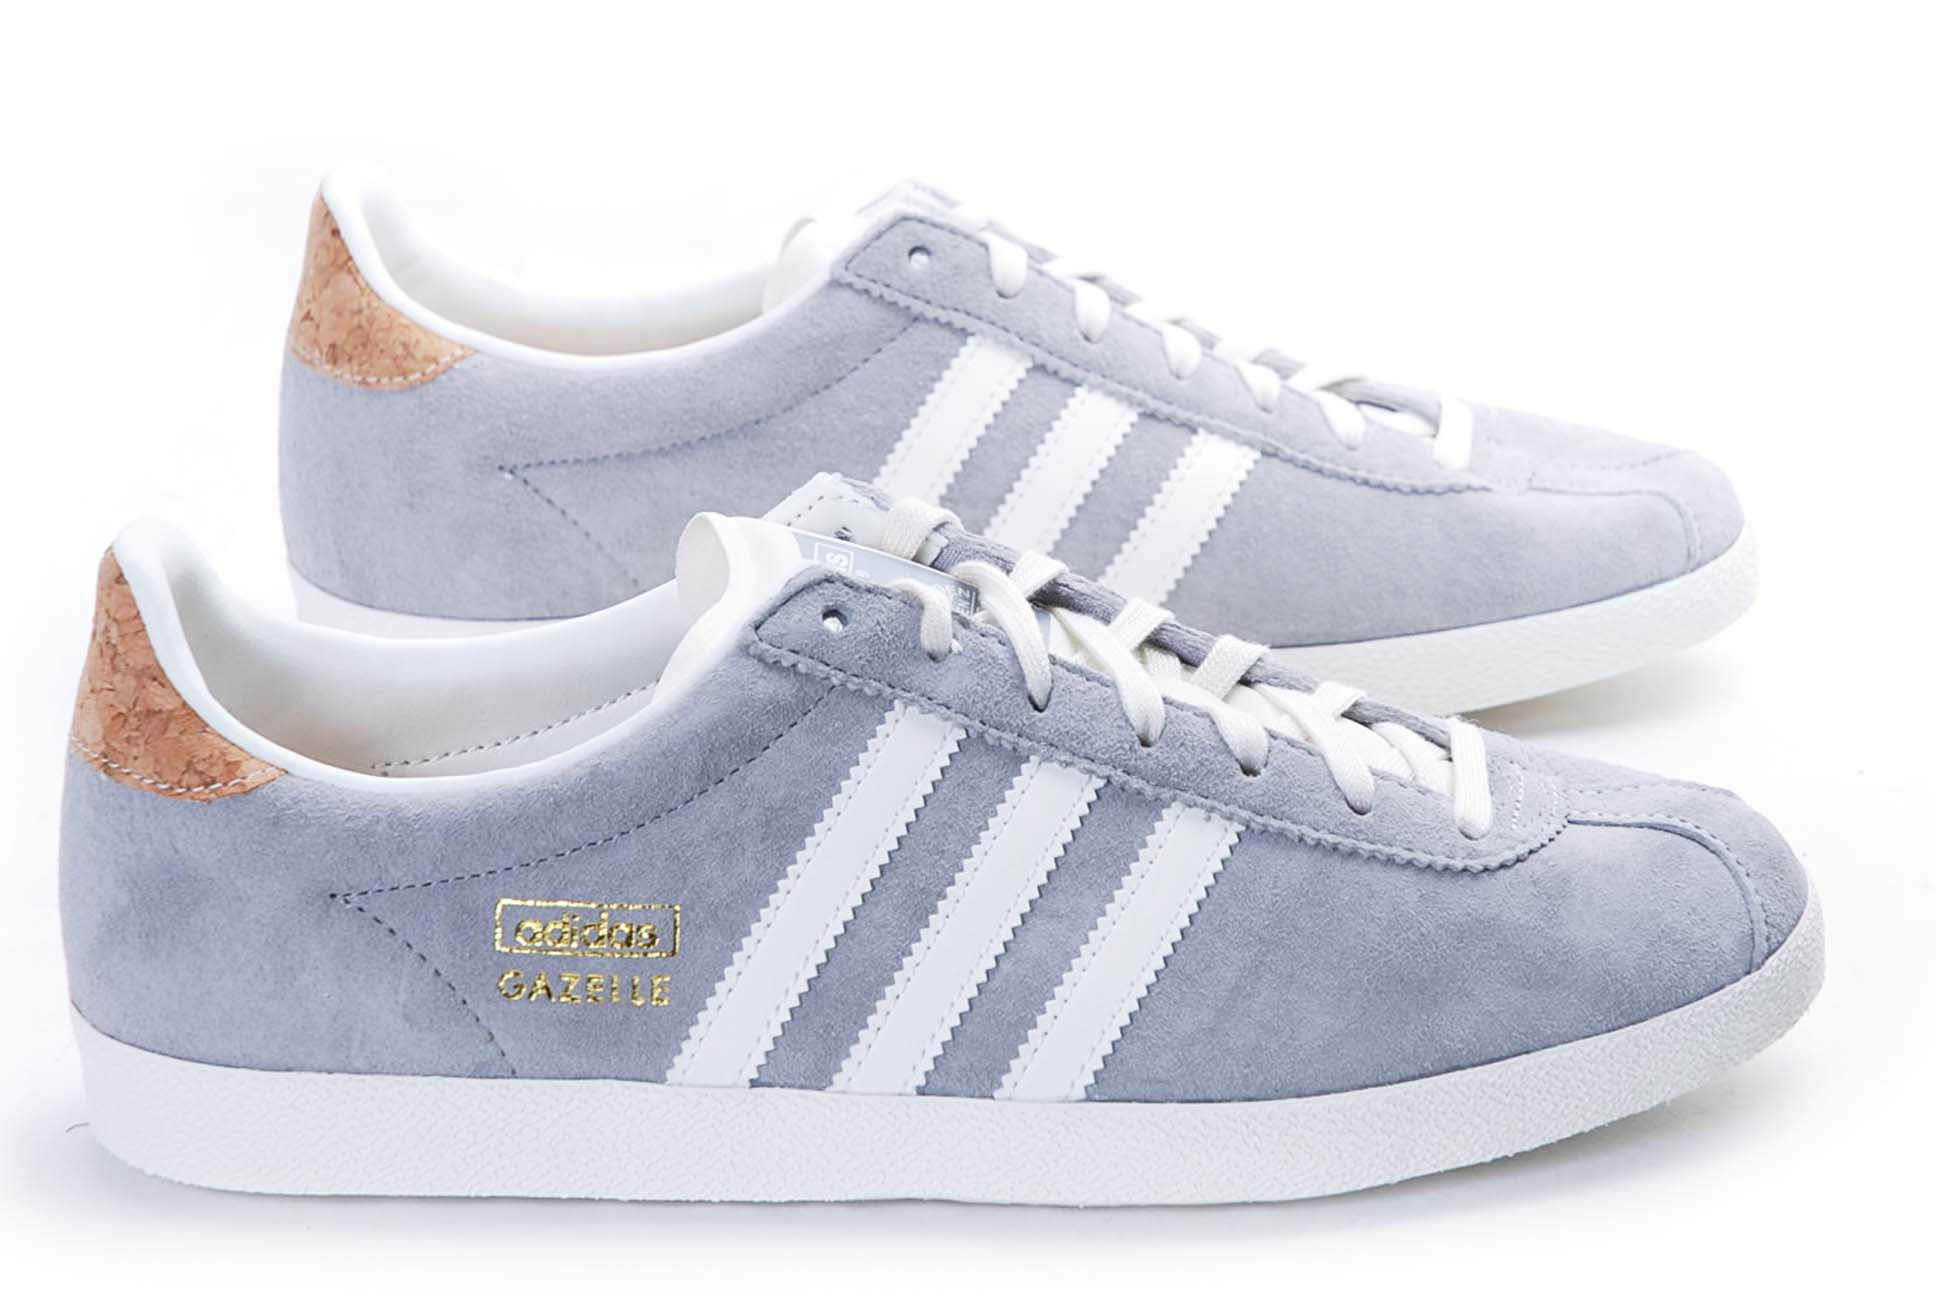 Adidas Refuse In Yiqtpd coffee Gazelle Og Homme pCSqrpw